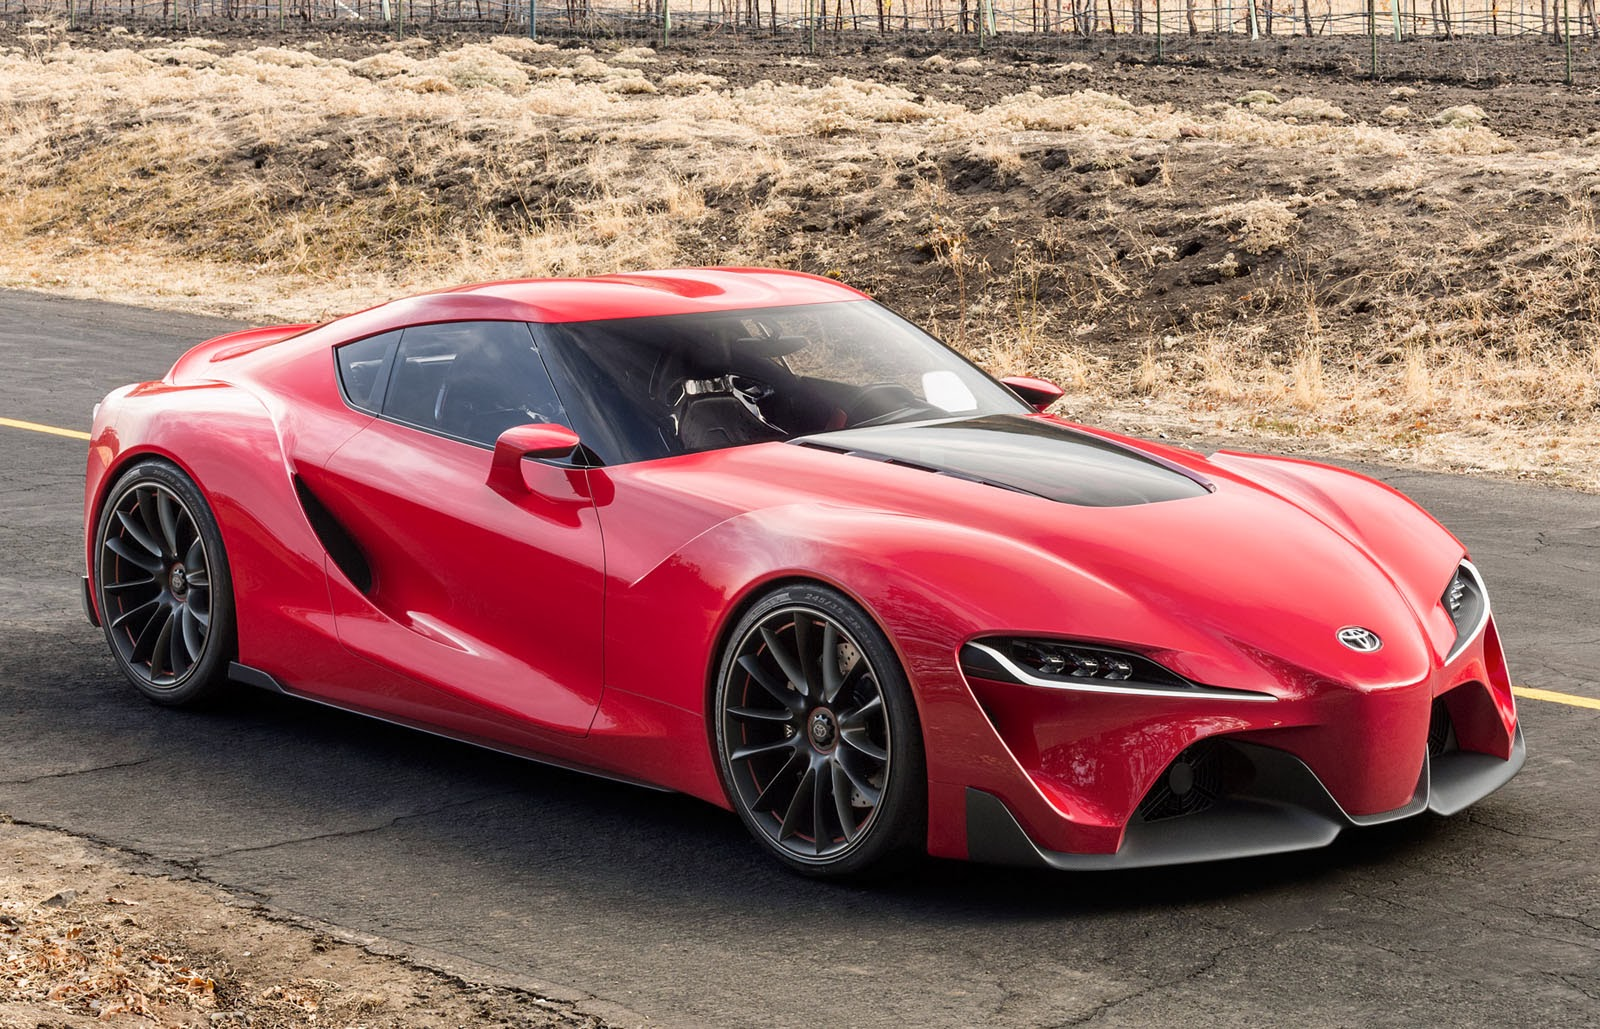 Sports Cars Of The World Of All Companies - All sports cars in the world